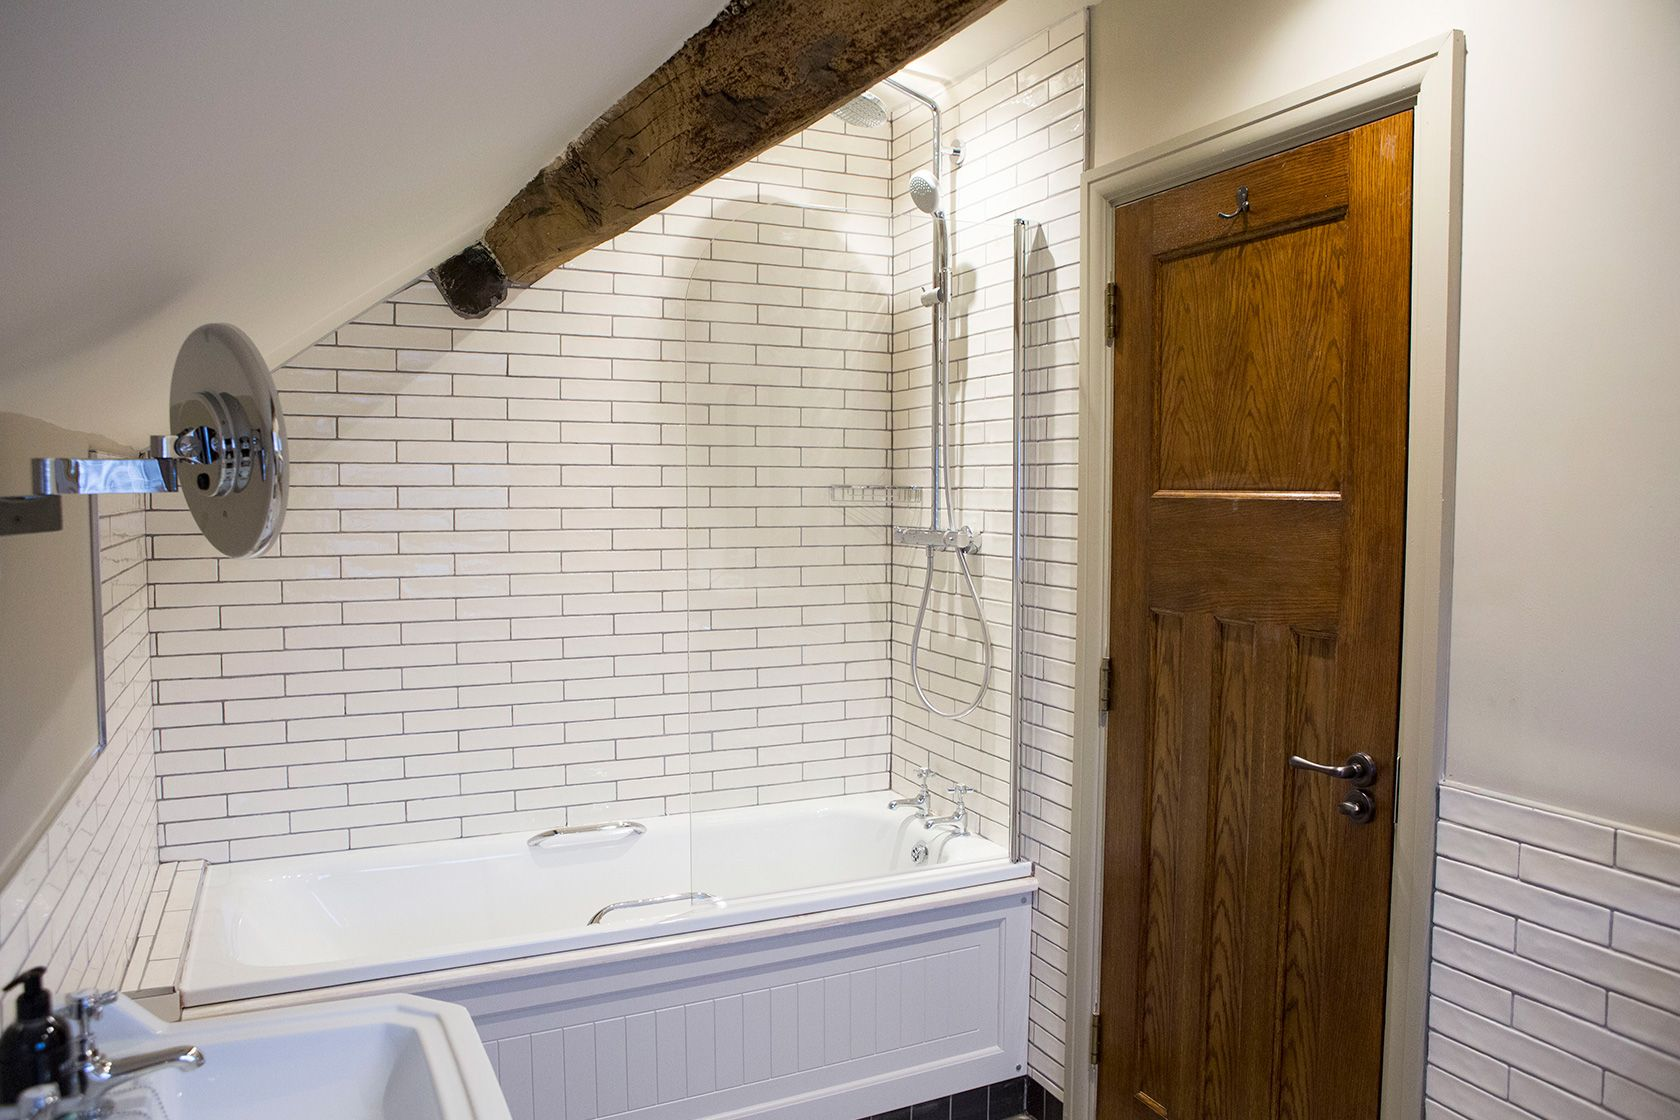 Newly-refurbished ensuites come as standard with all premium rooms at the Legh Arms